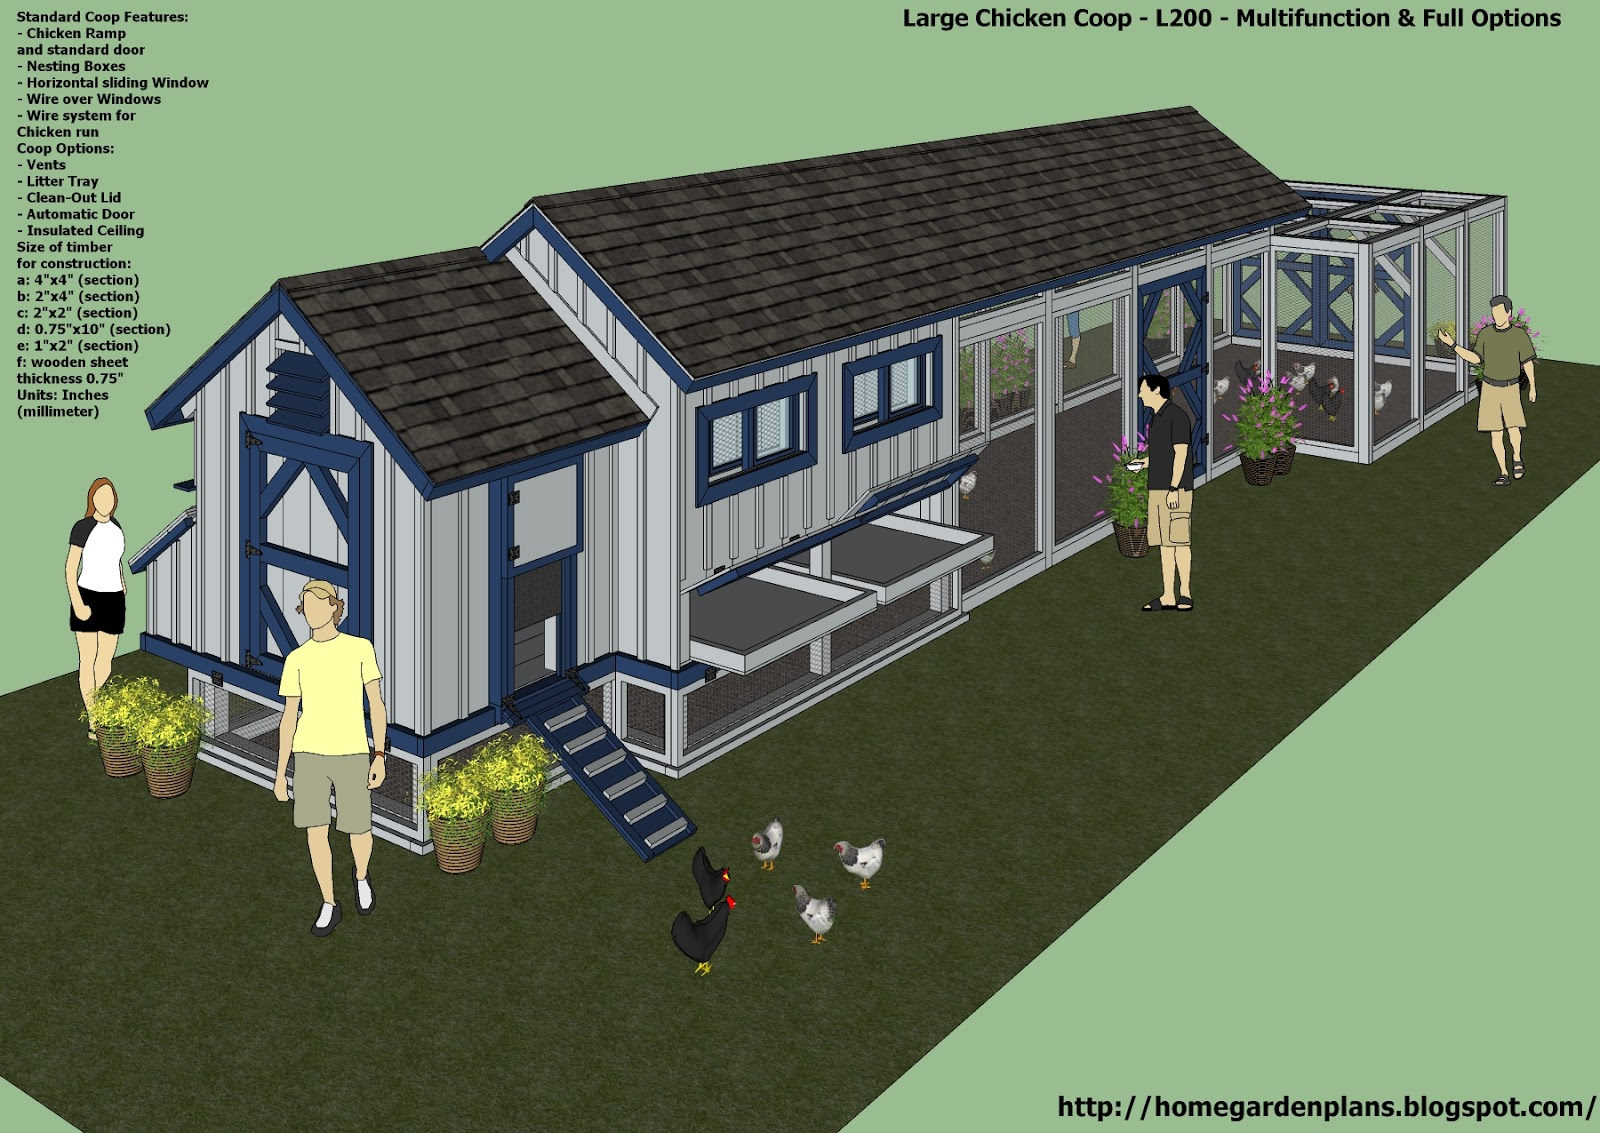 home garden plans: L200 - Large Chicken Coop Plans - How ...